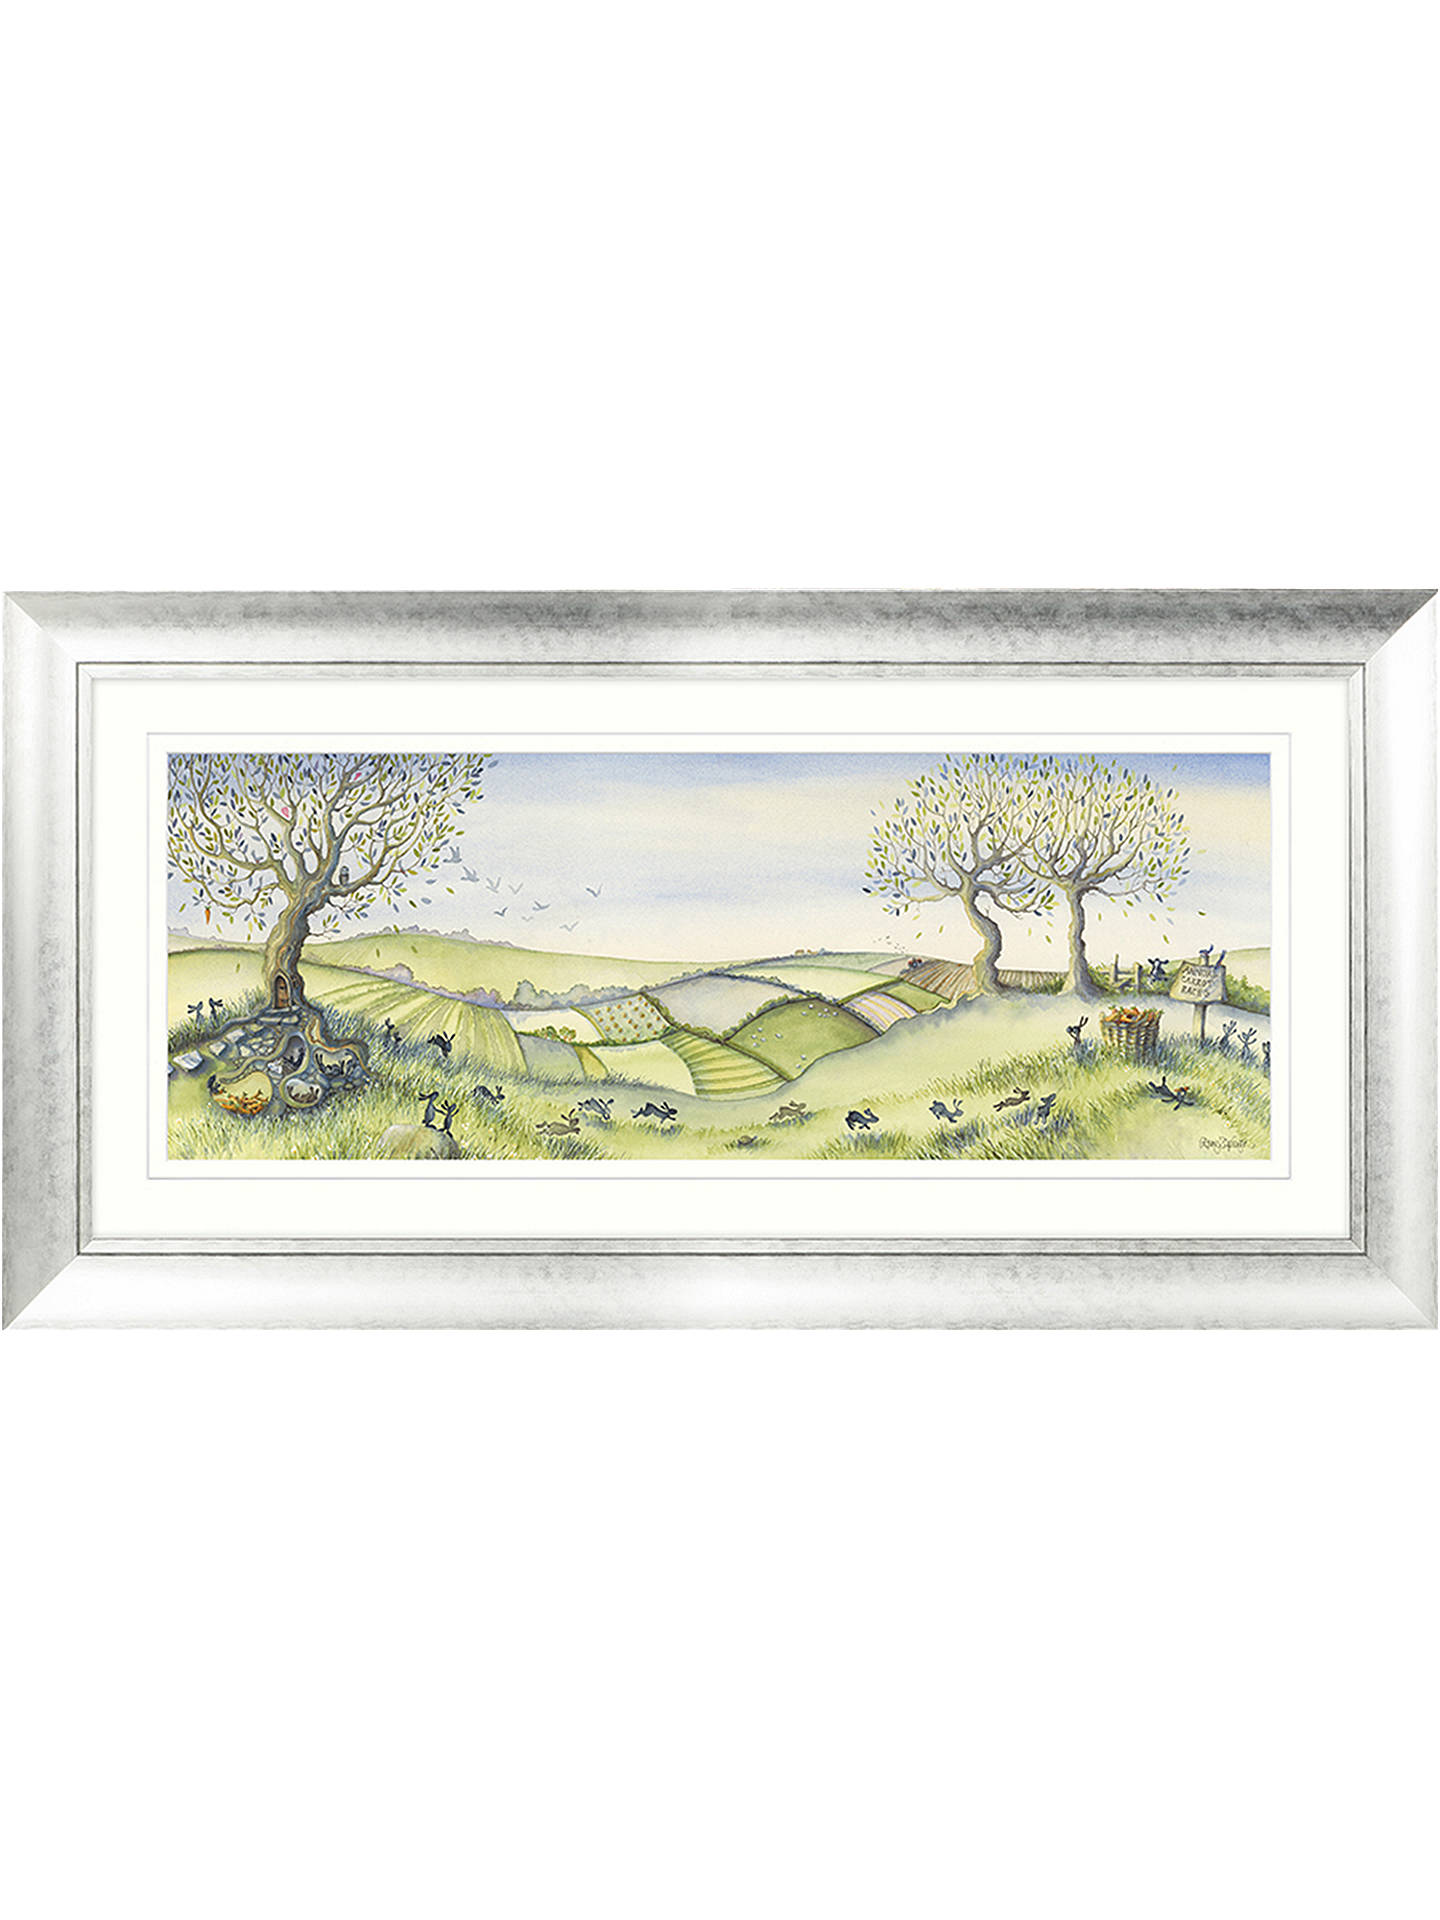 Buy Catherine Stephenson - Annual Carrot Race Framed Print, 59 x 112cm Online at johnlewis.com